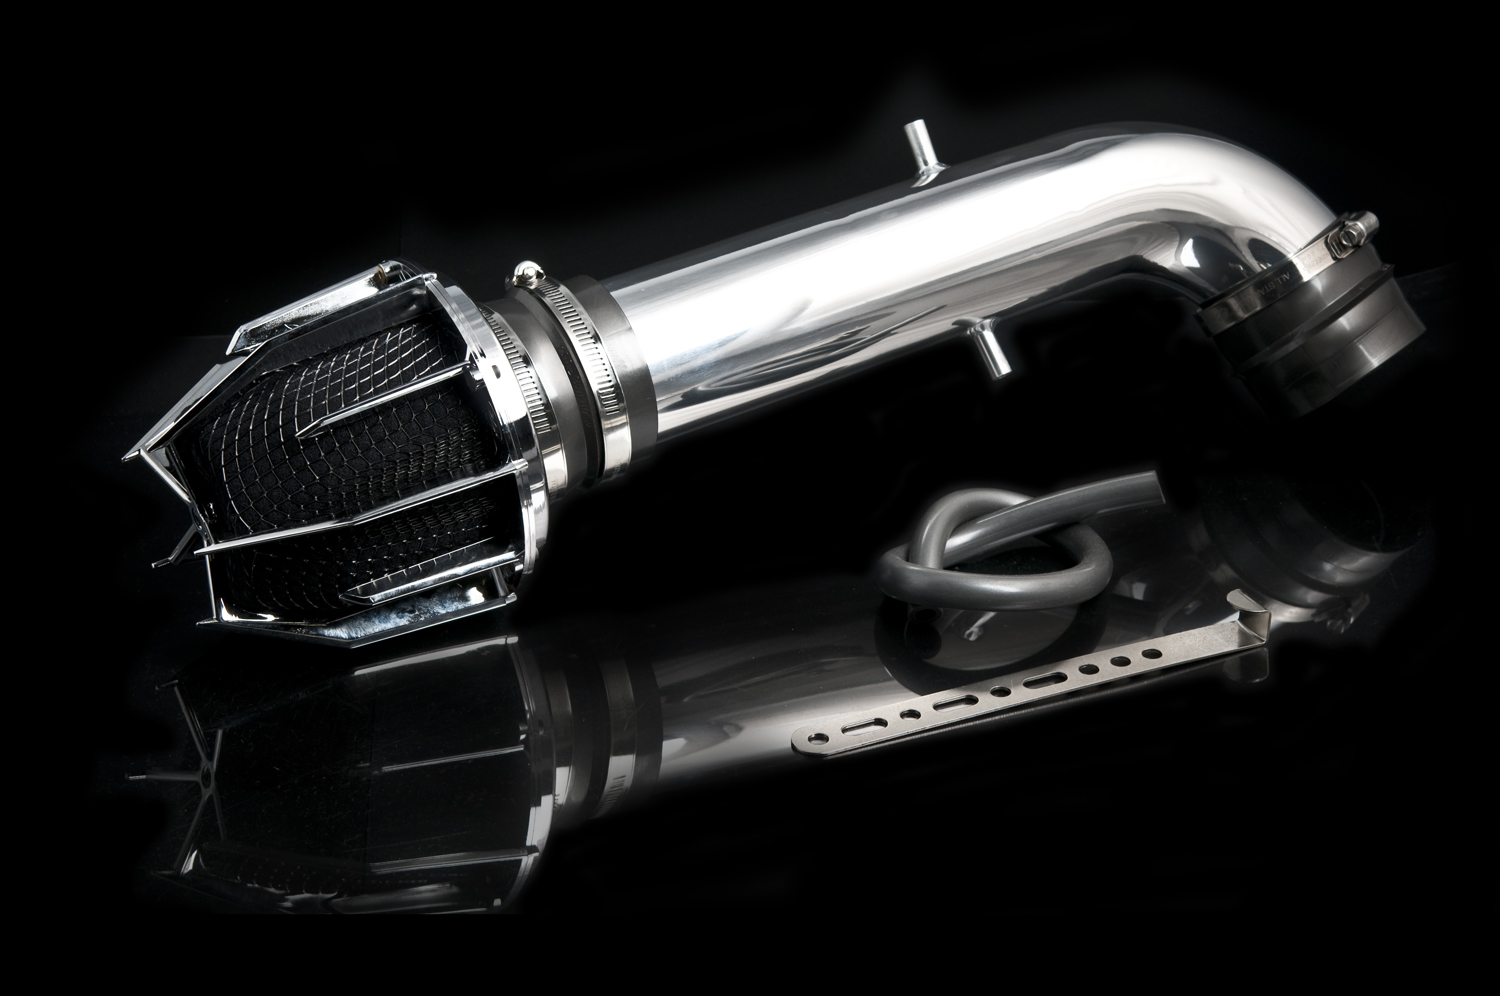 Acura TL L WeaponR Dragon Air Intake By WeaponR - Acura tl cold air intake